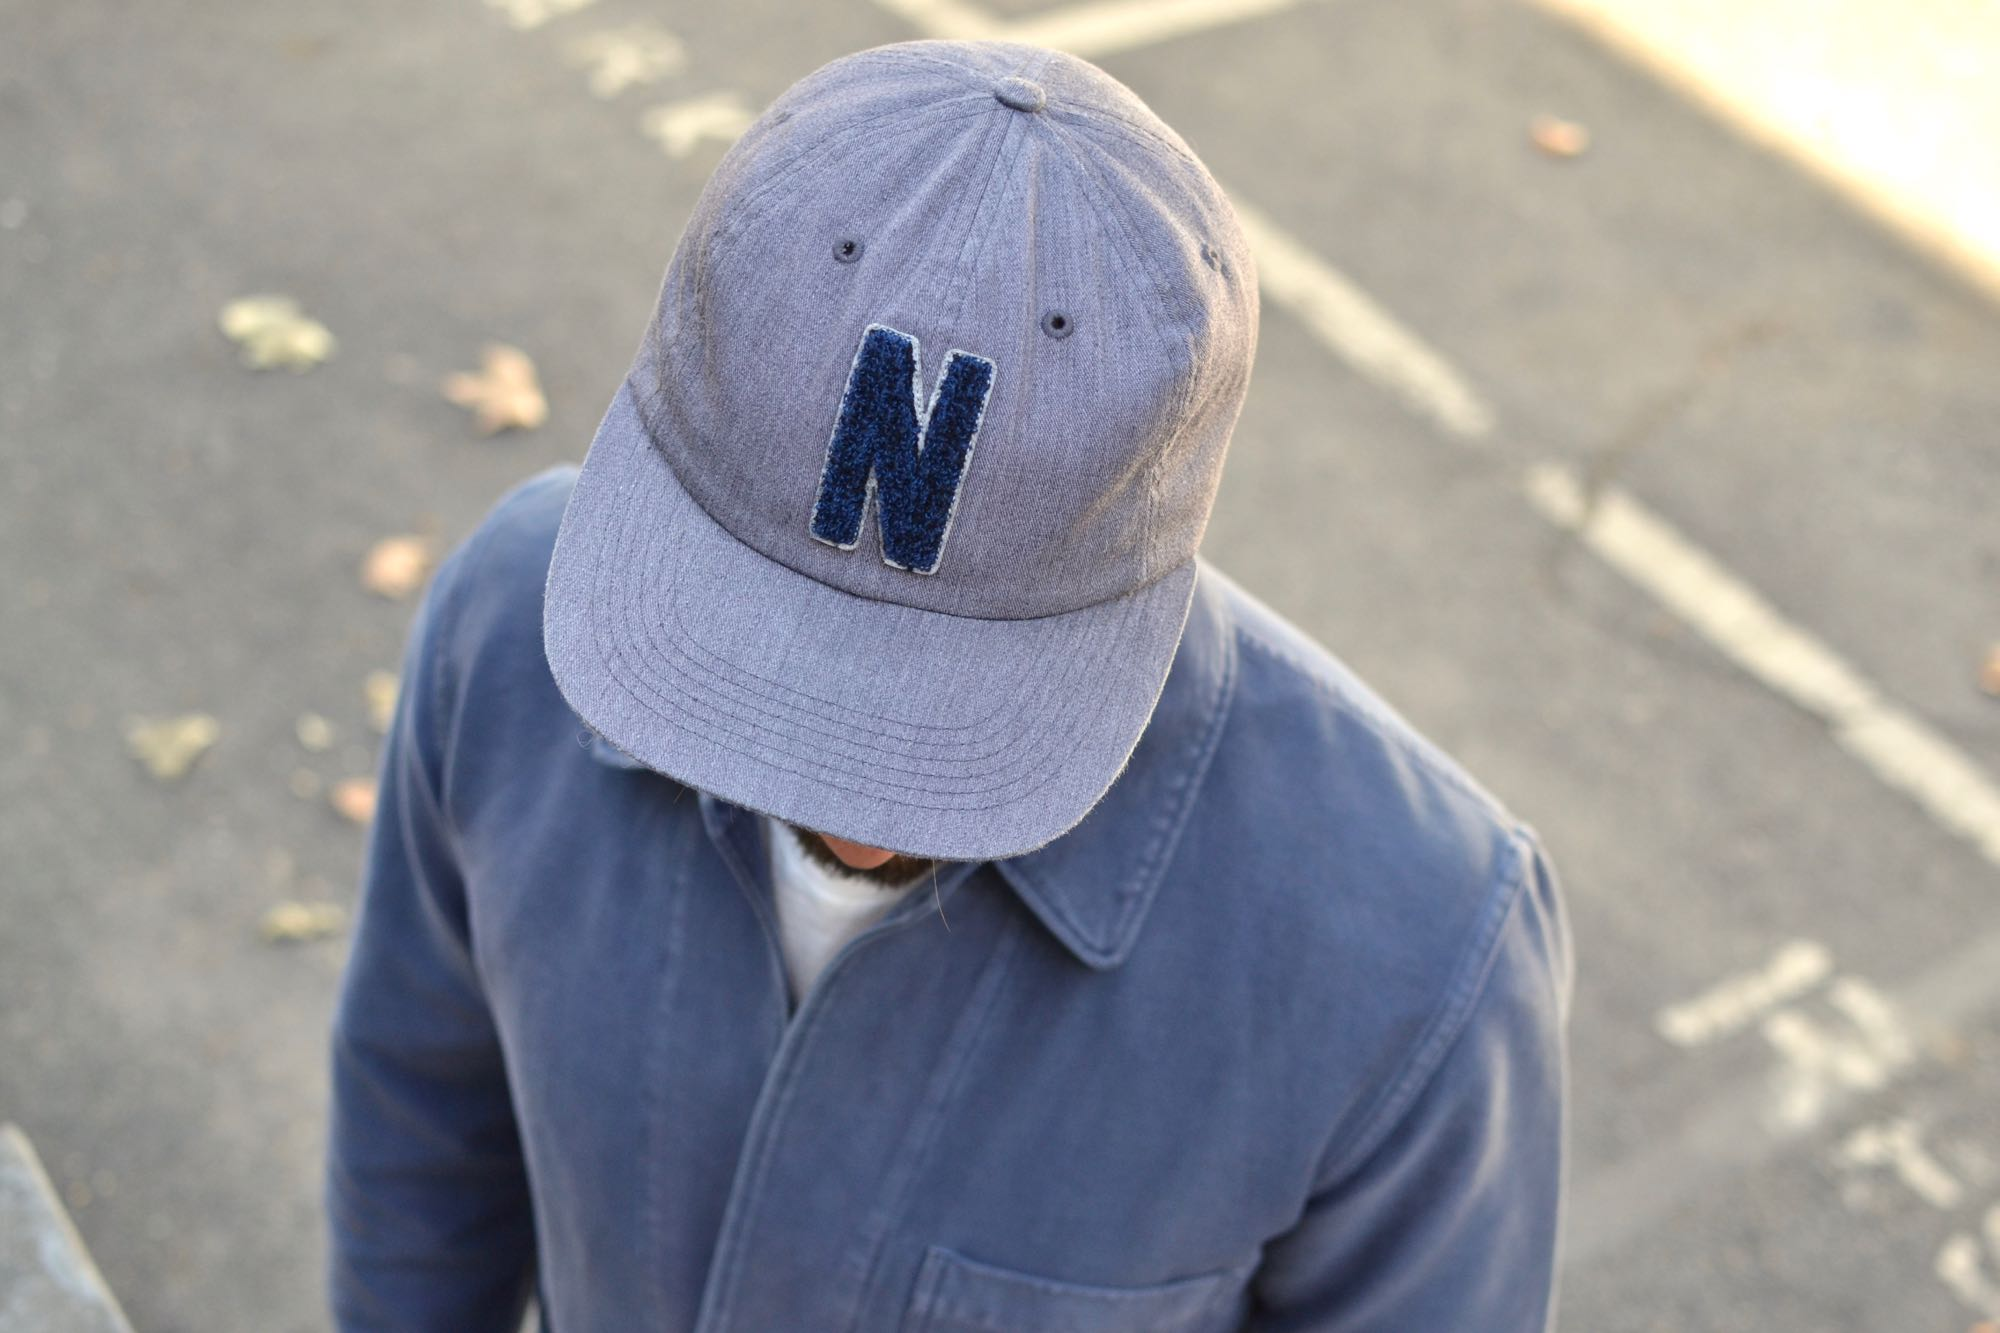 comment porter une casquette 5panel marque norse projects sttle streetwear casual worker